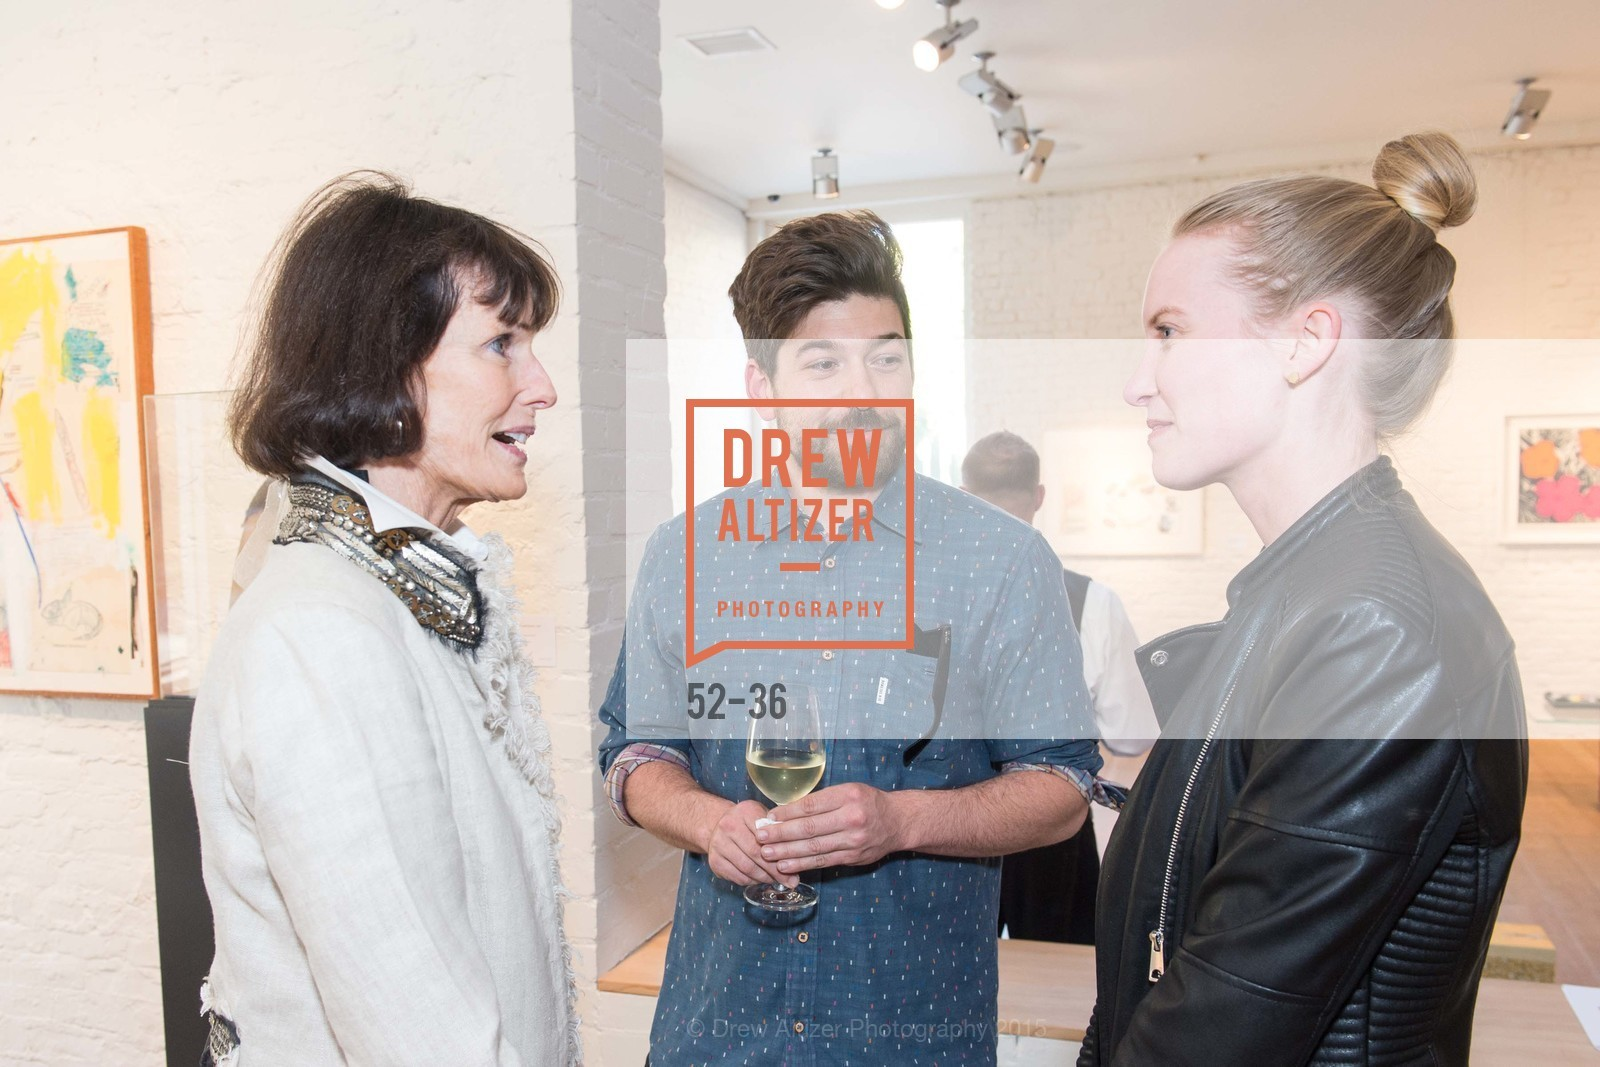 Sharon Wick, Andrew Mcclintock, Leigh Cooper, Post War and Contemporary preview at Hedge Gallery , Hedge Gallery. 501 Pacific Ave, San Francisco, CA 94133, April 16th, 2015,Drew Altizer, Drew Altizer Photography, full-service agency, private events, San Francisco photographer, photographer california